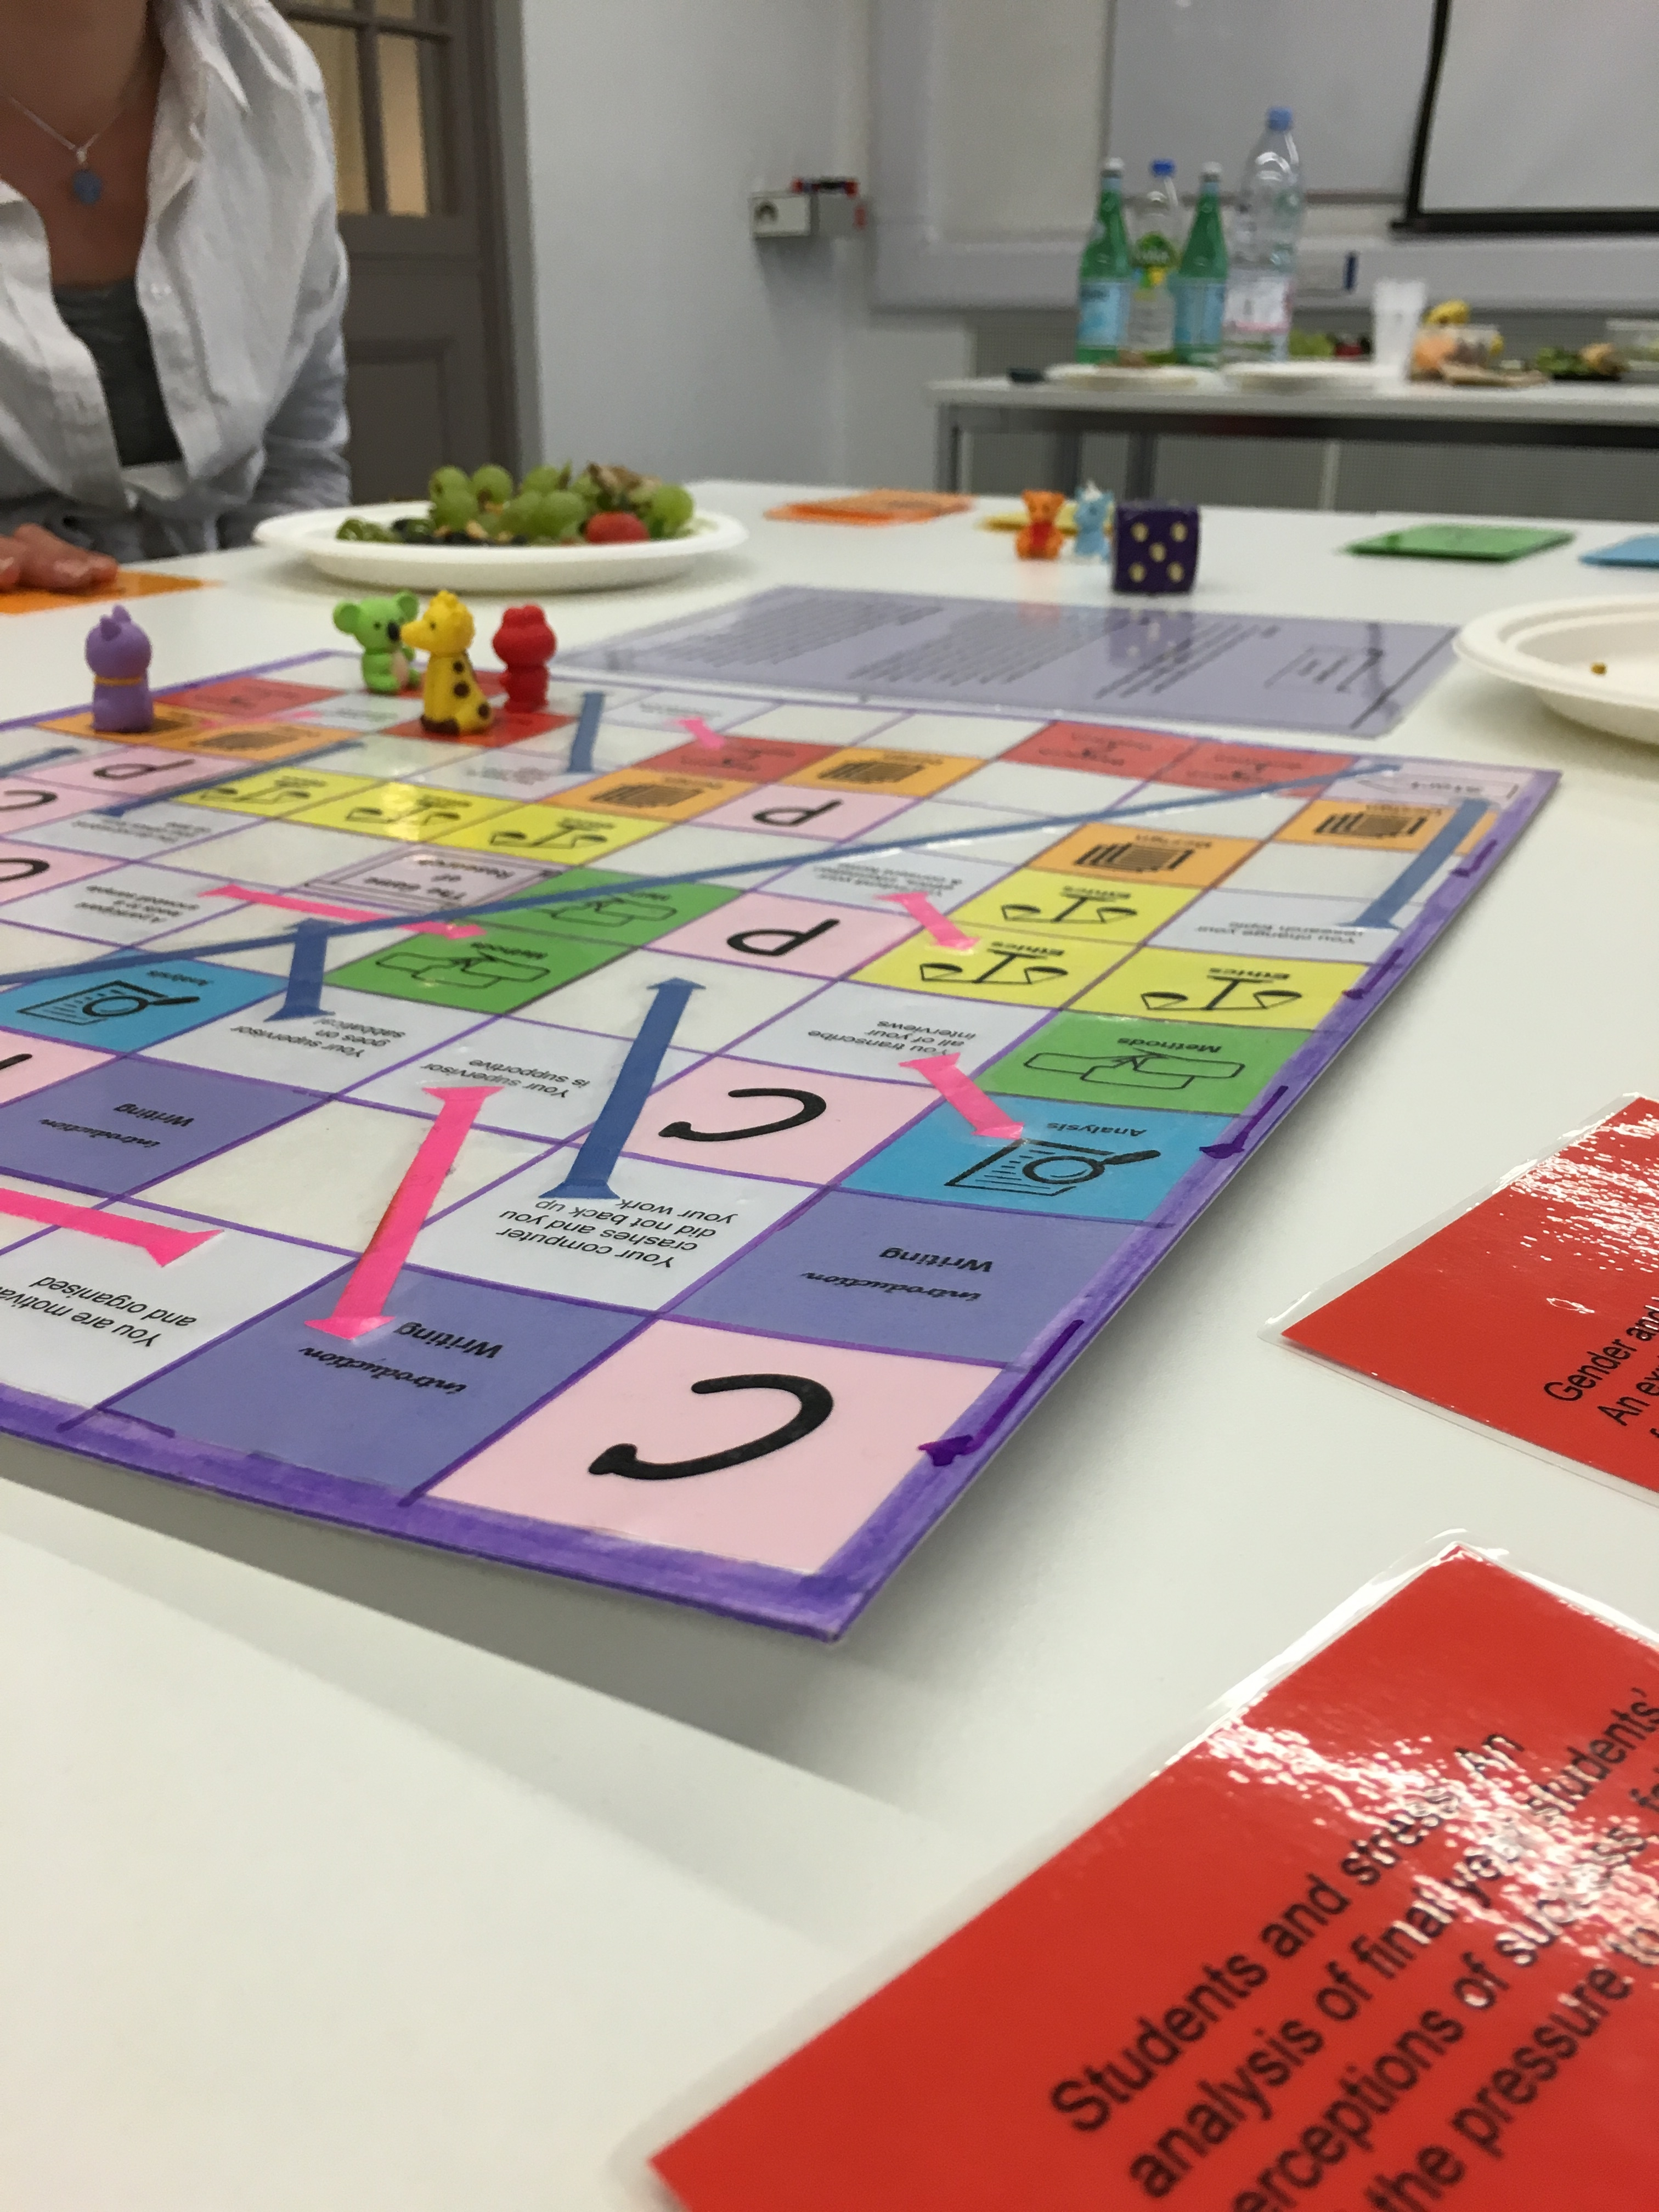 Game-based learning: teaching how to conduct a research project using a board game